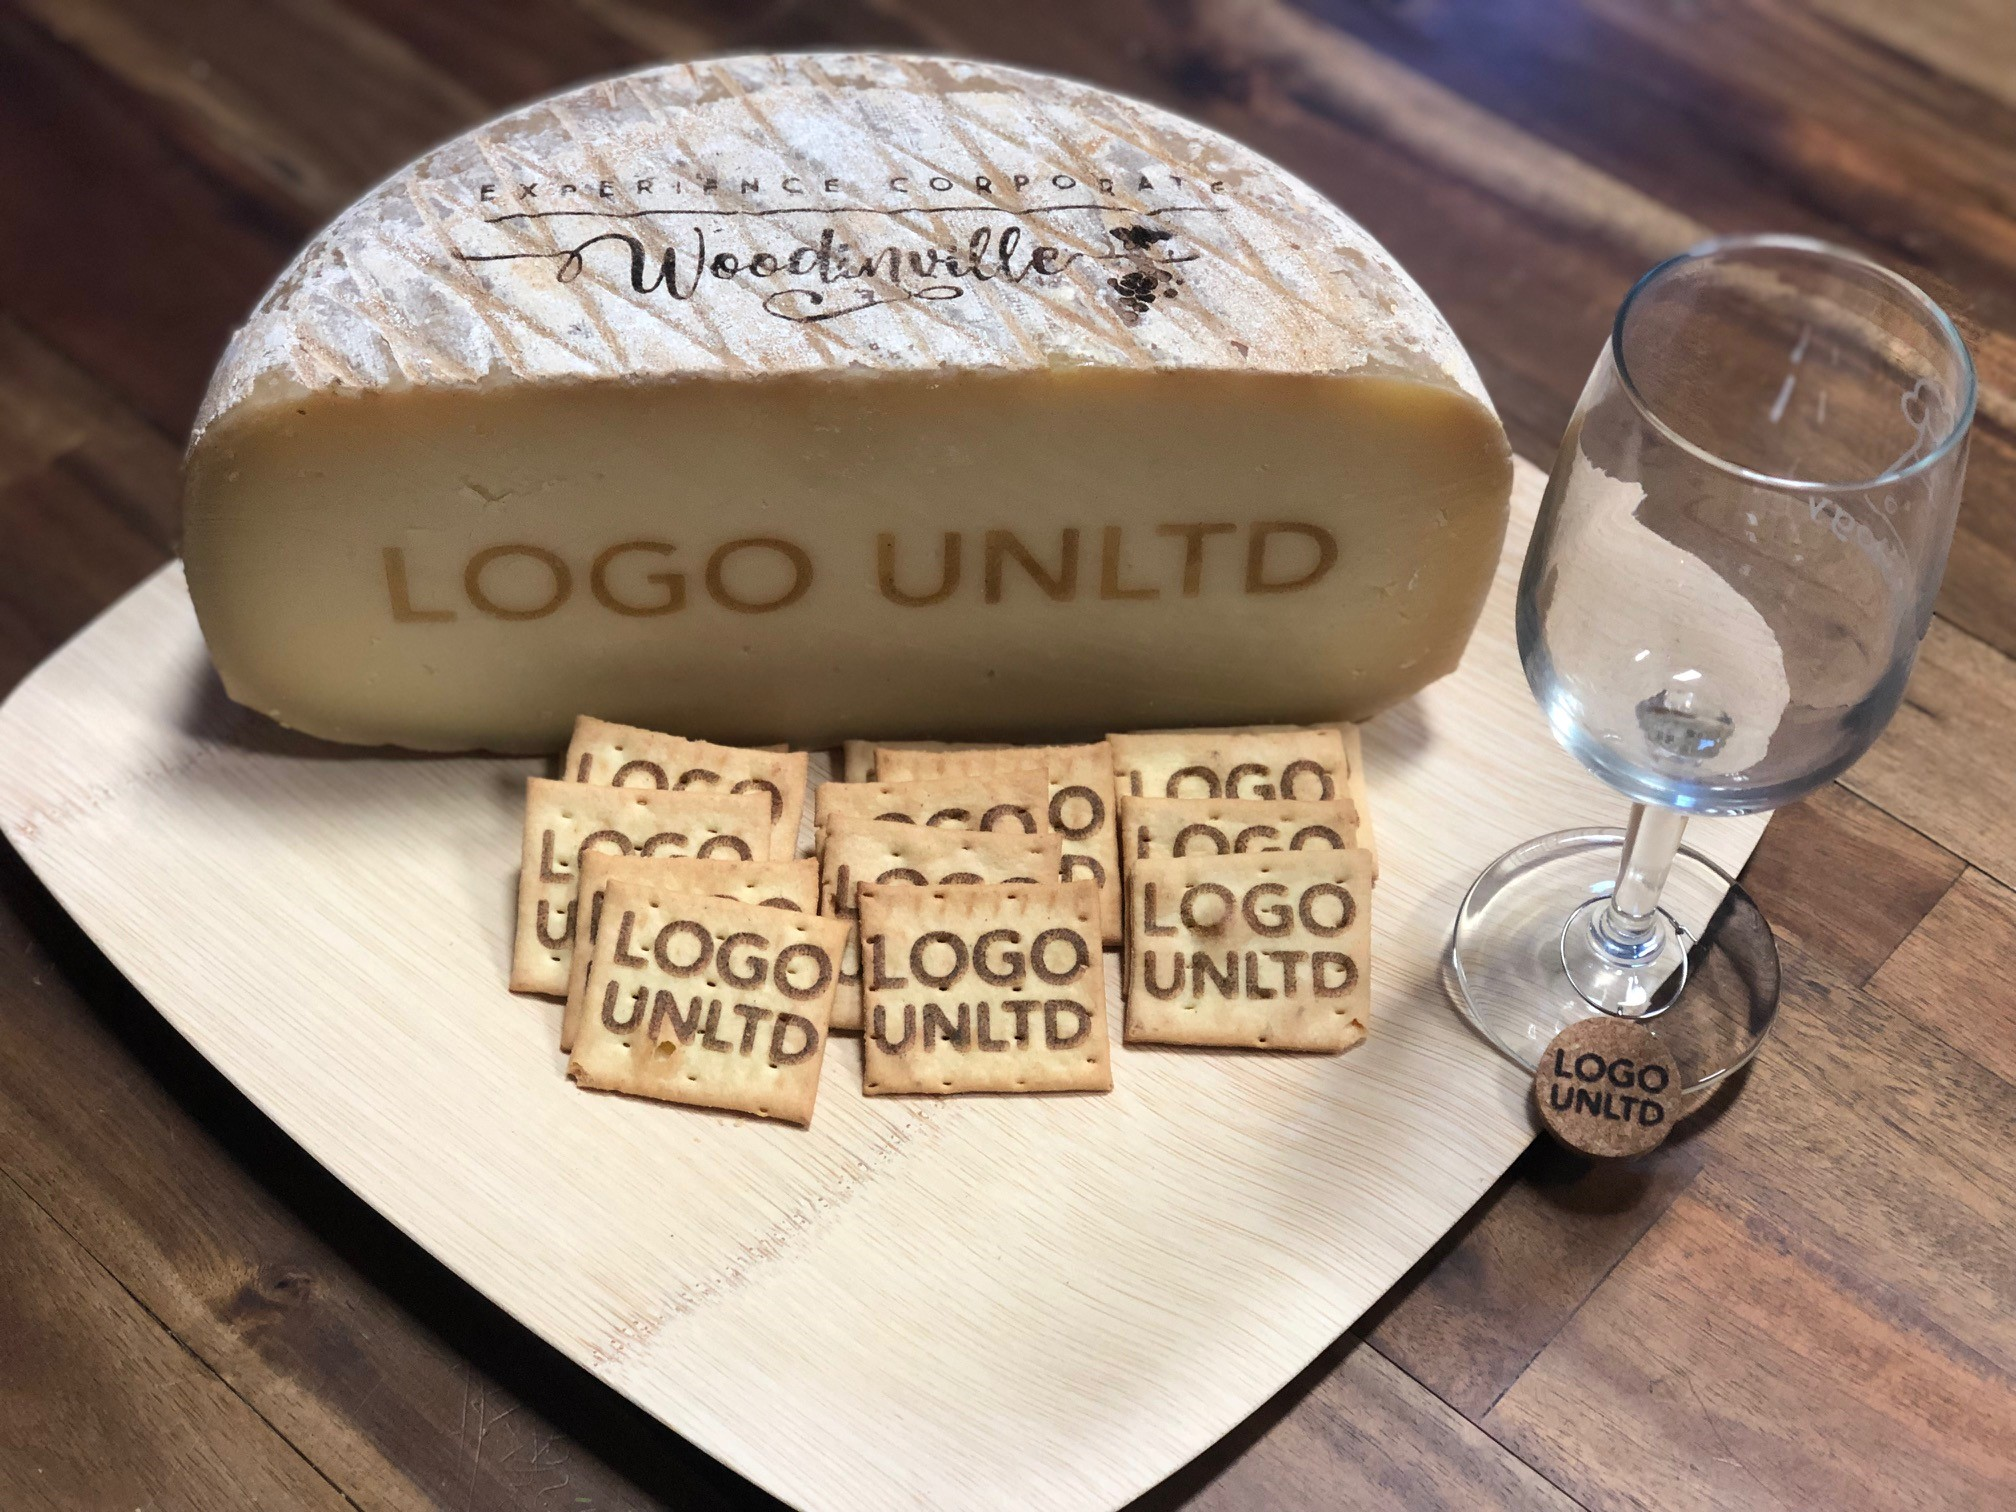 logounltd_laser_etching_embroidery_screen_printing_apparel_uniform_custom_tshirts_kirkland_bellevue_seattle_redmond_woodinville_branded_merchandise_promotional_products_logo_unltd_experience_woodinville_columbia_winery (2).jpg